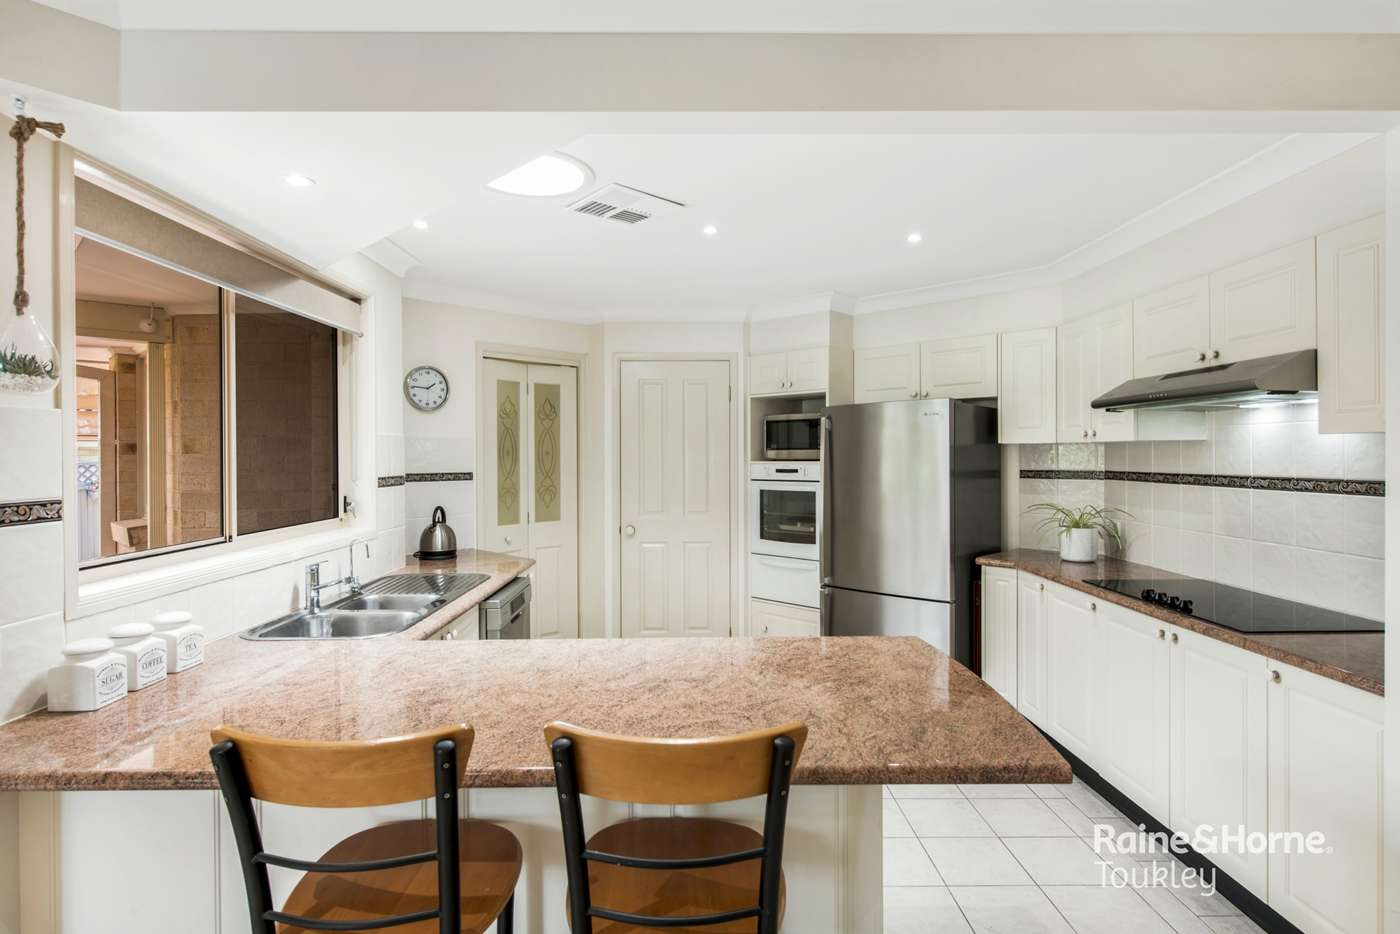 Fifth view of Homely house listing, 10 Mariner Close, Summerland Point NSW 2259